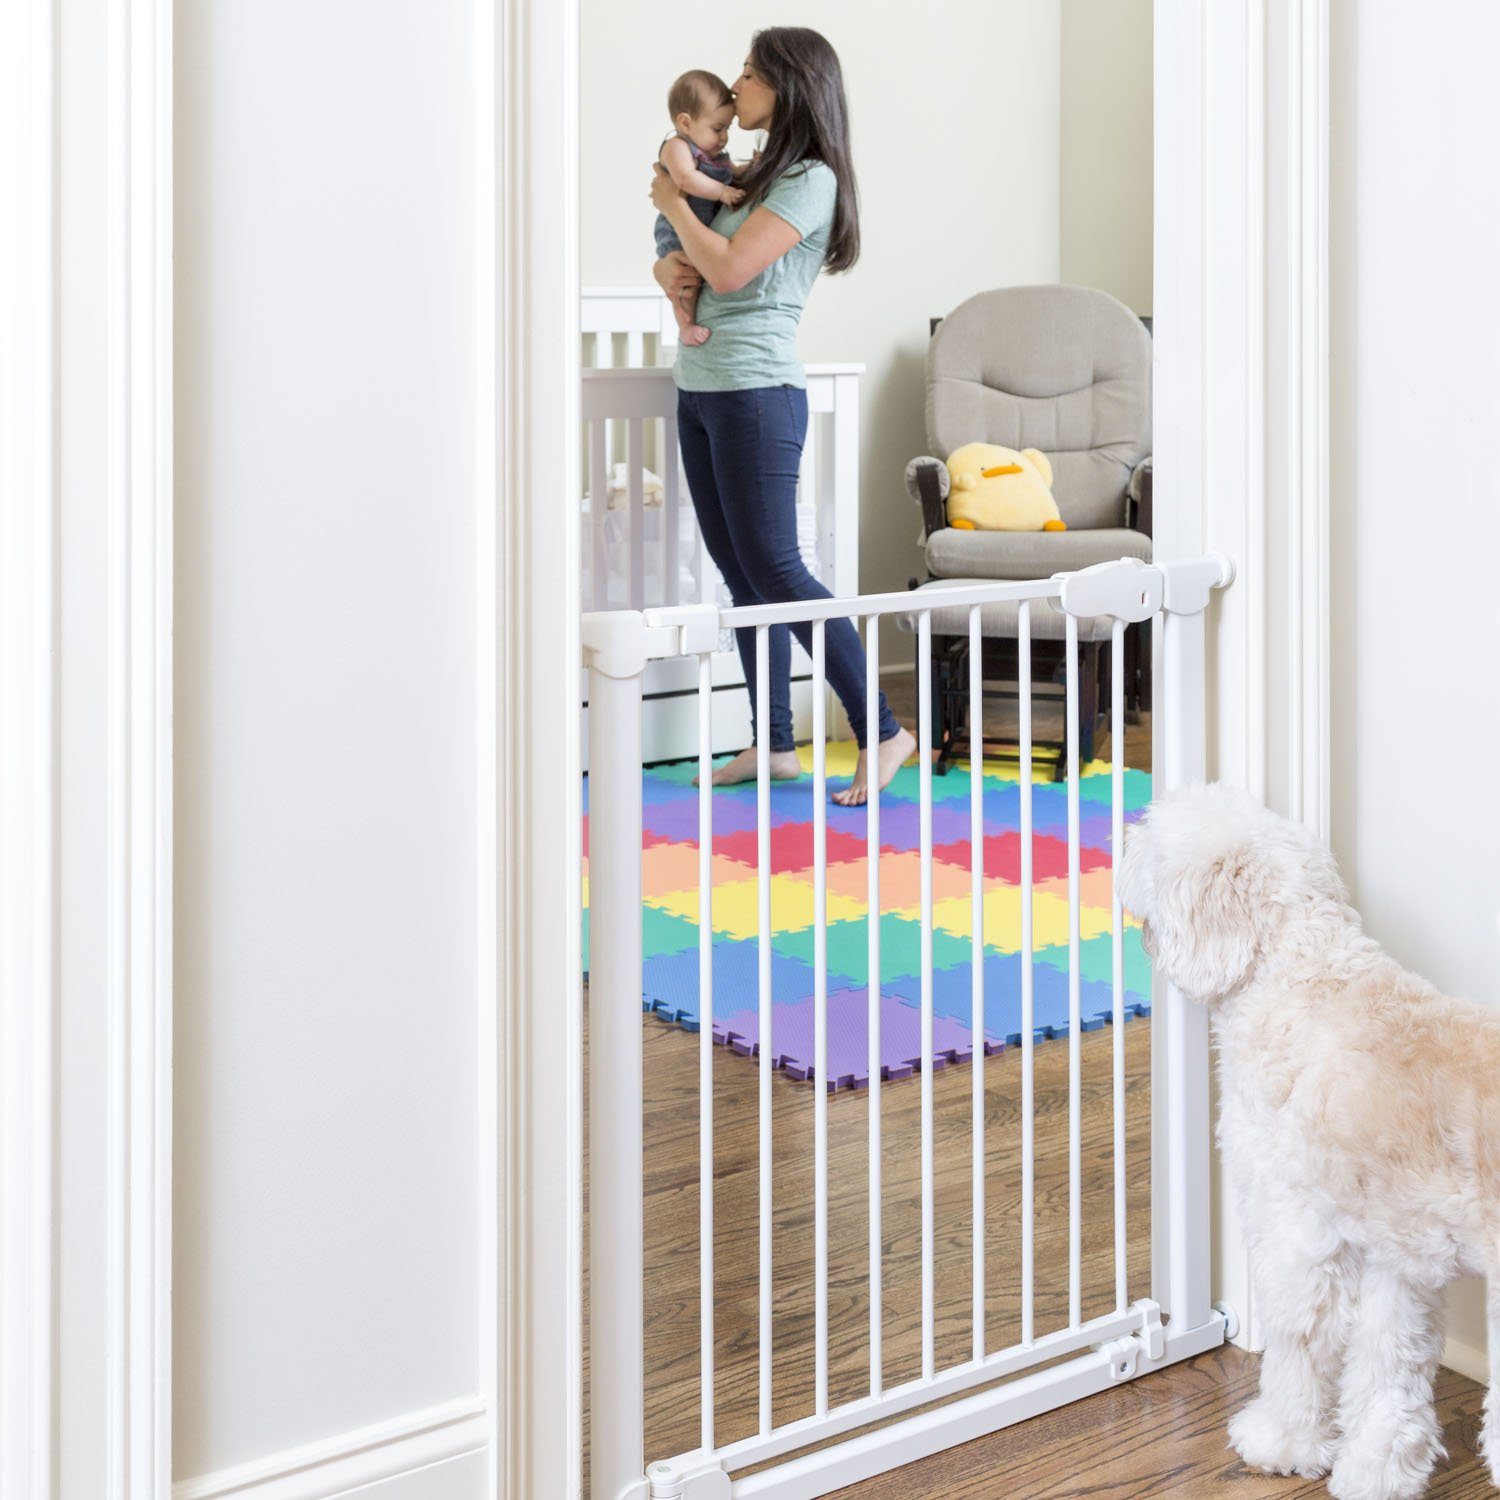 Qdos Safety Baby Gate, Professional Grade Meets Tougher European Standards, Automatically Closes & Latches, Magnetic Lock Indicator, Easy Installation, Pressure Mount, White